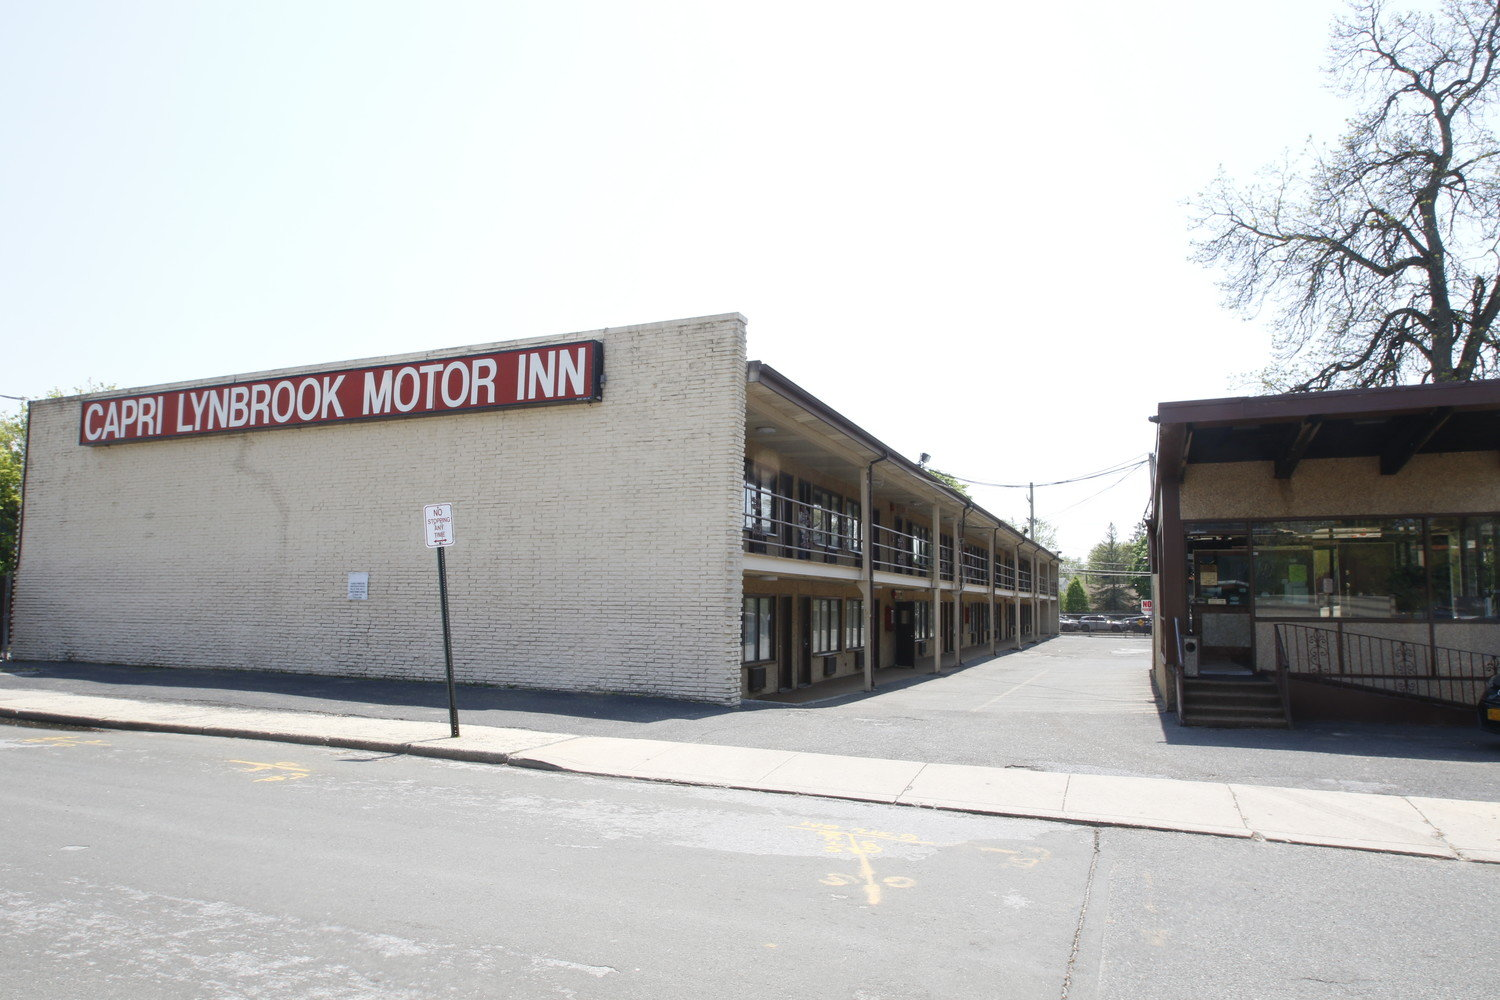 Lynbrook village officials set Oct. 21 as the date for a public hearing on the development of new housing at the site of the Capri Lynbrook Motor Inn.